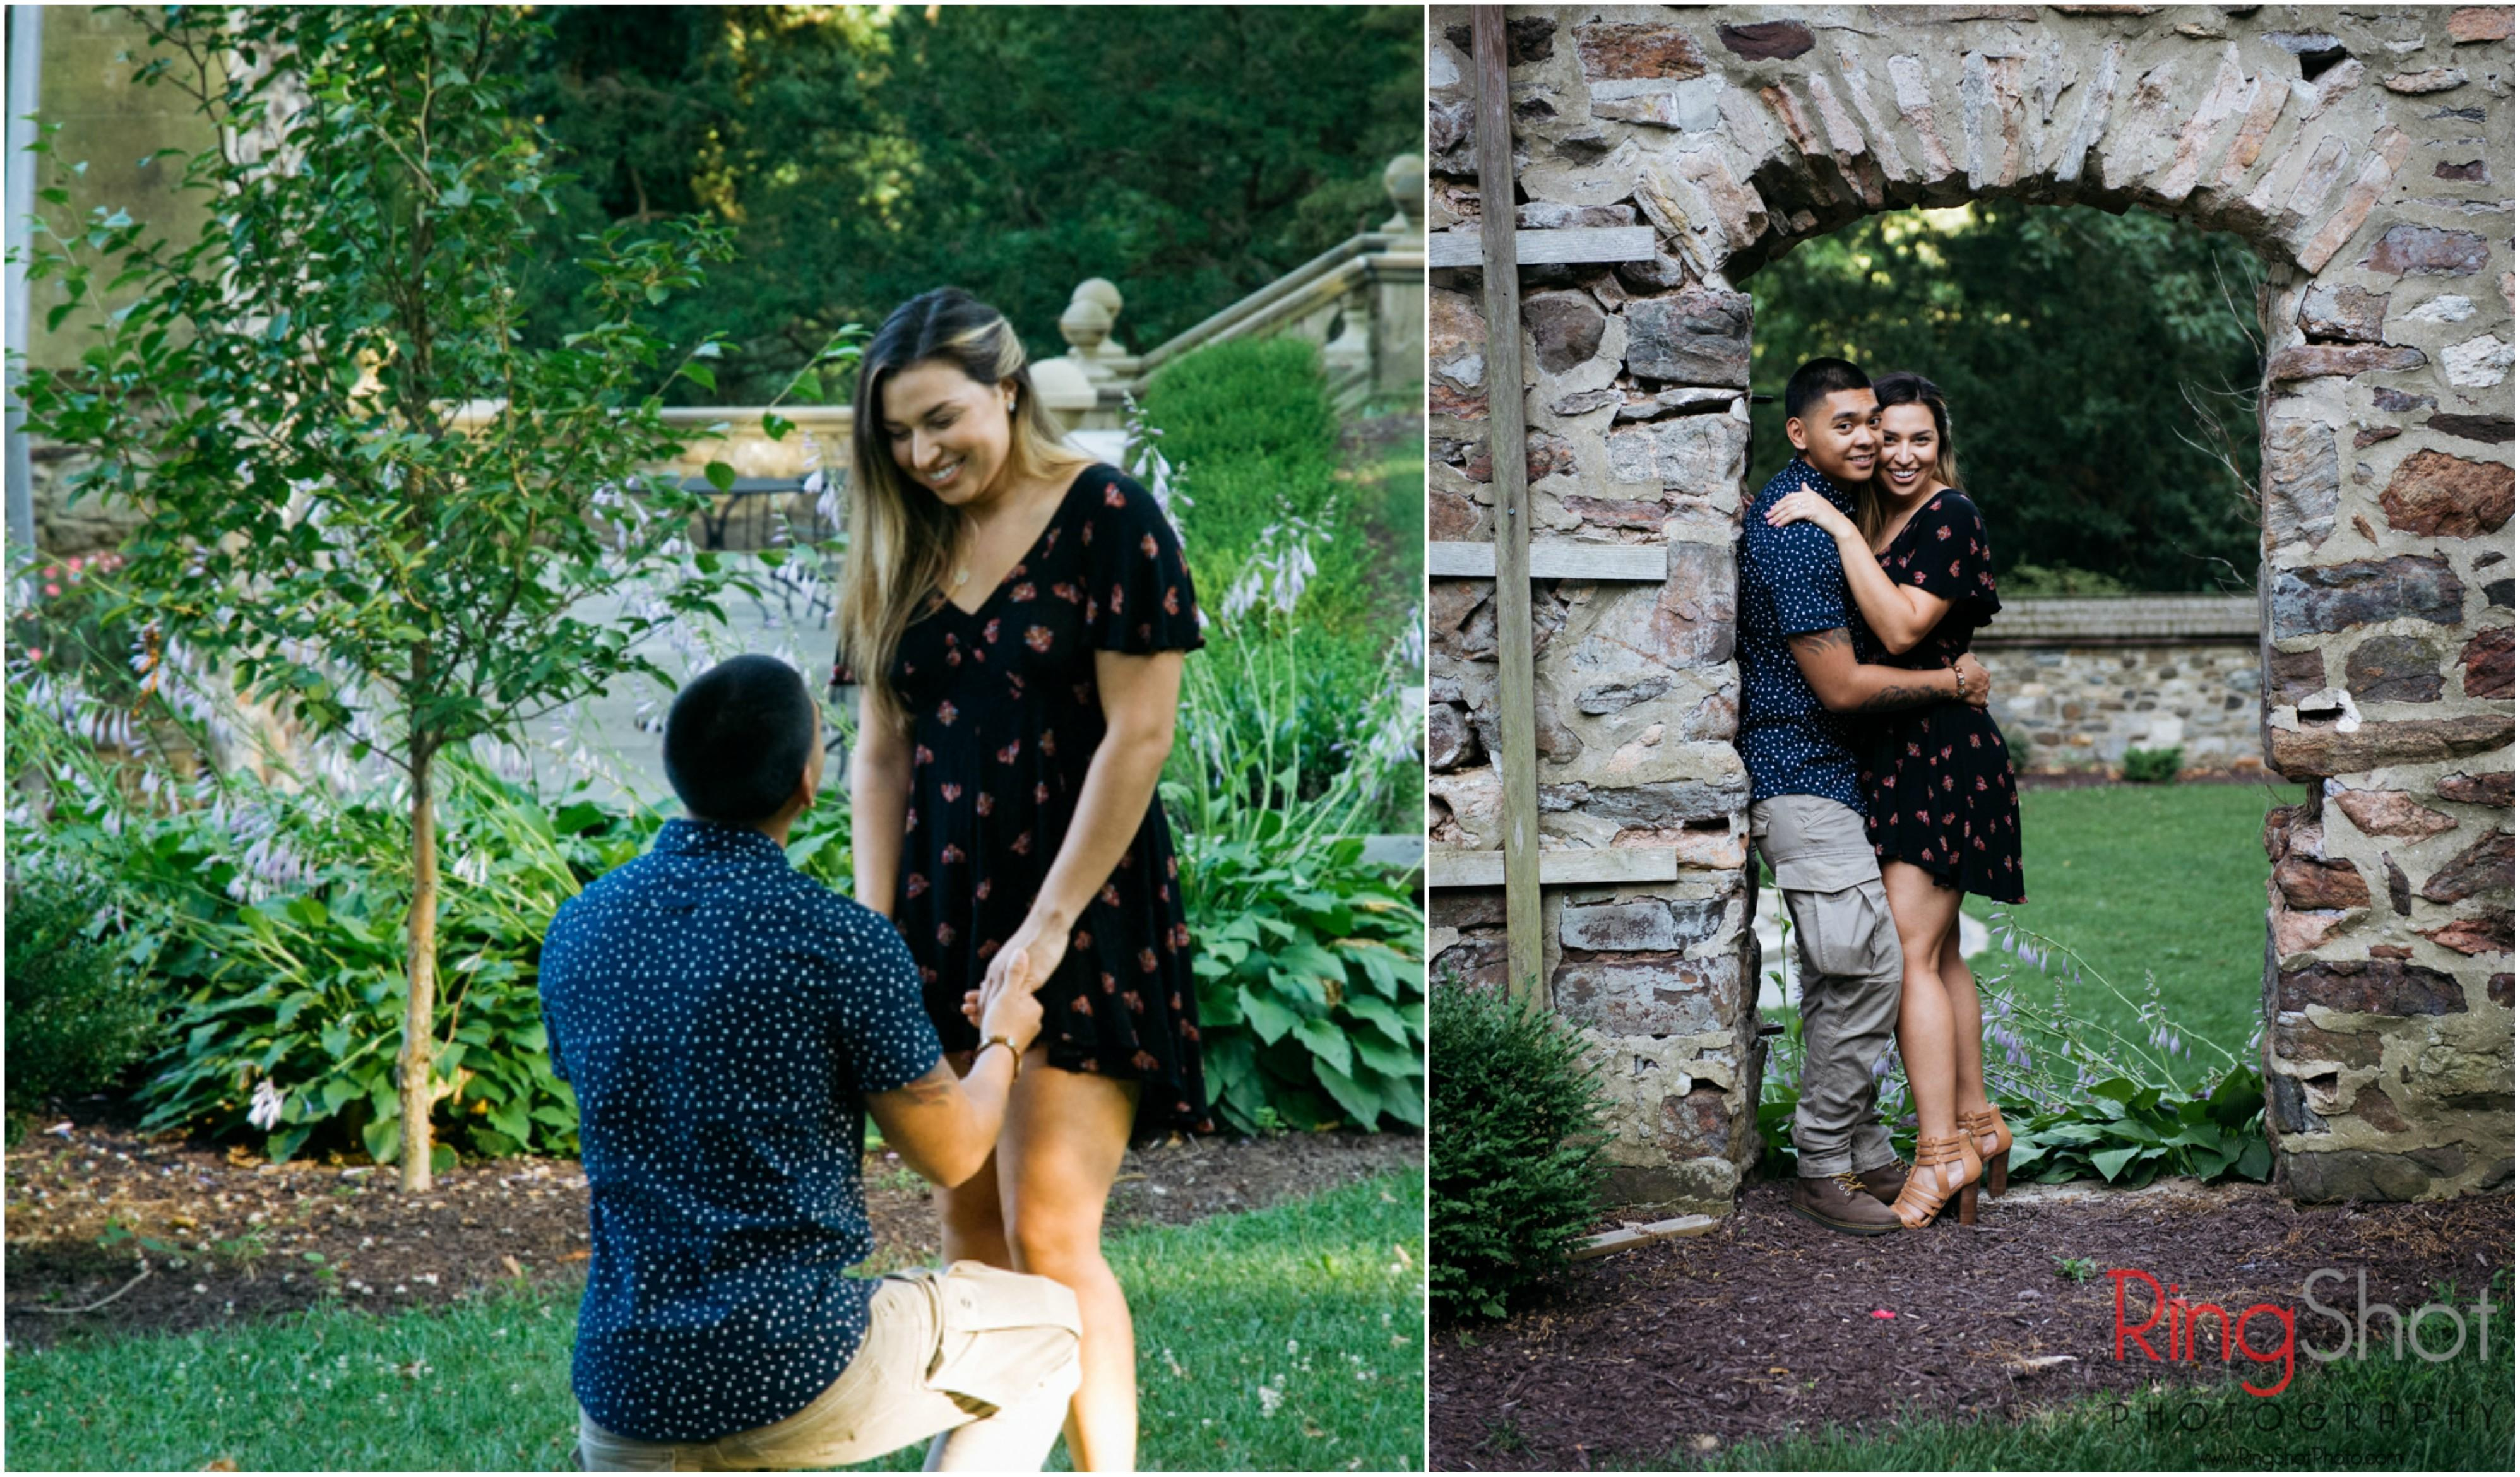 Philadelphia Proposal Locations RingShot Photography Philly In Love Philadelphia Weddings 2